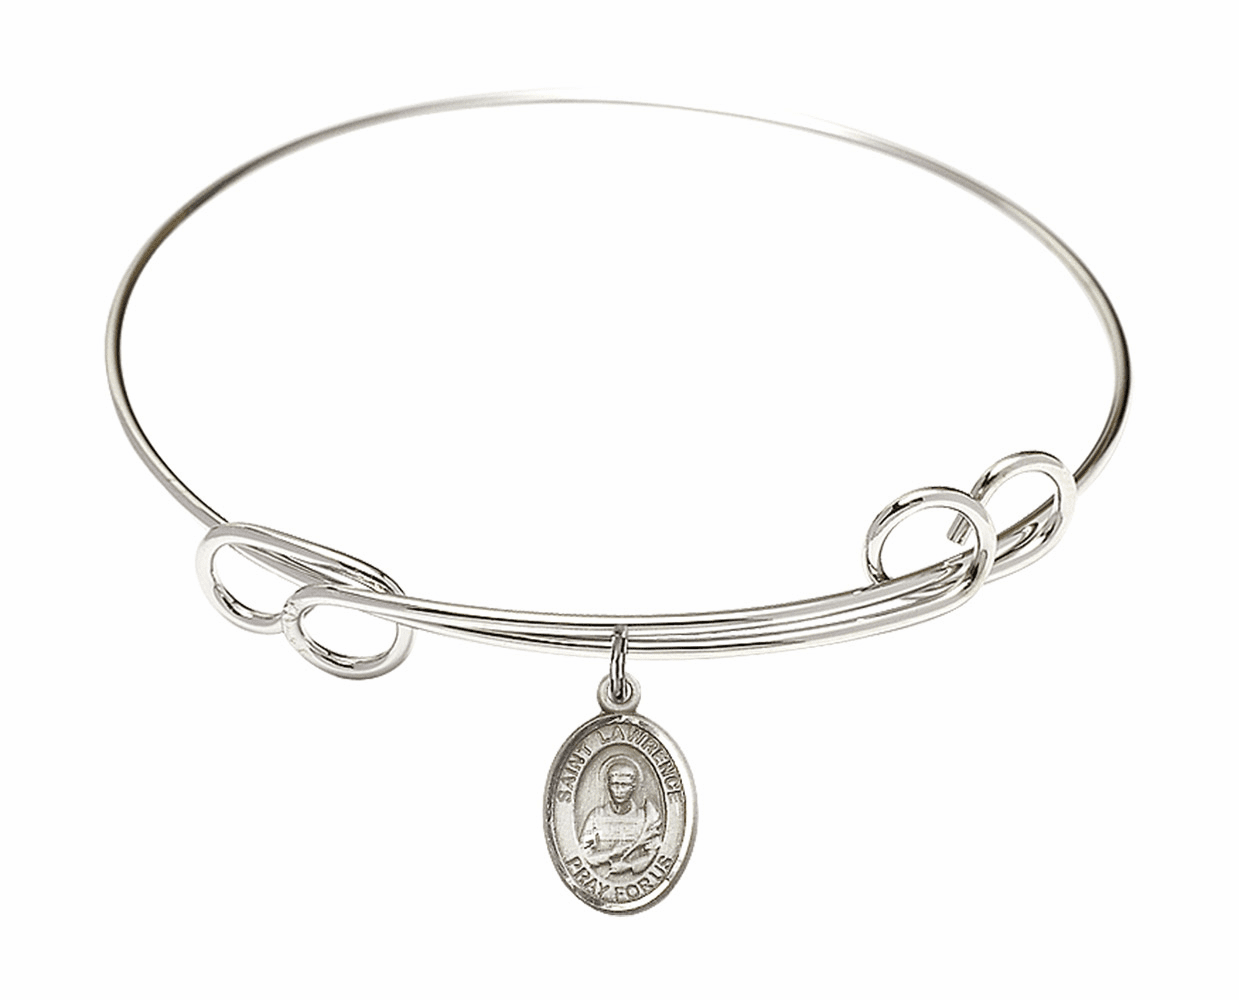 Round Loop St Lawrence Bangle Charm Bracelet by Bliss